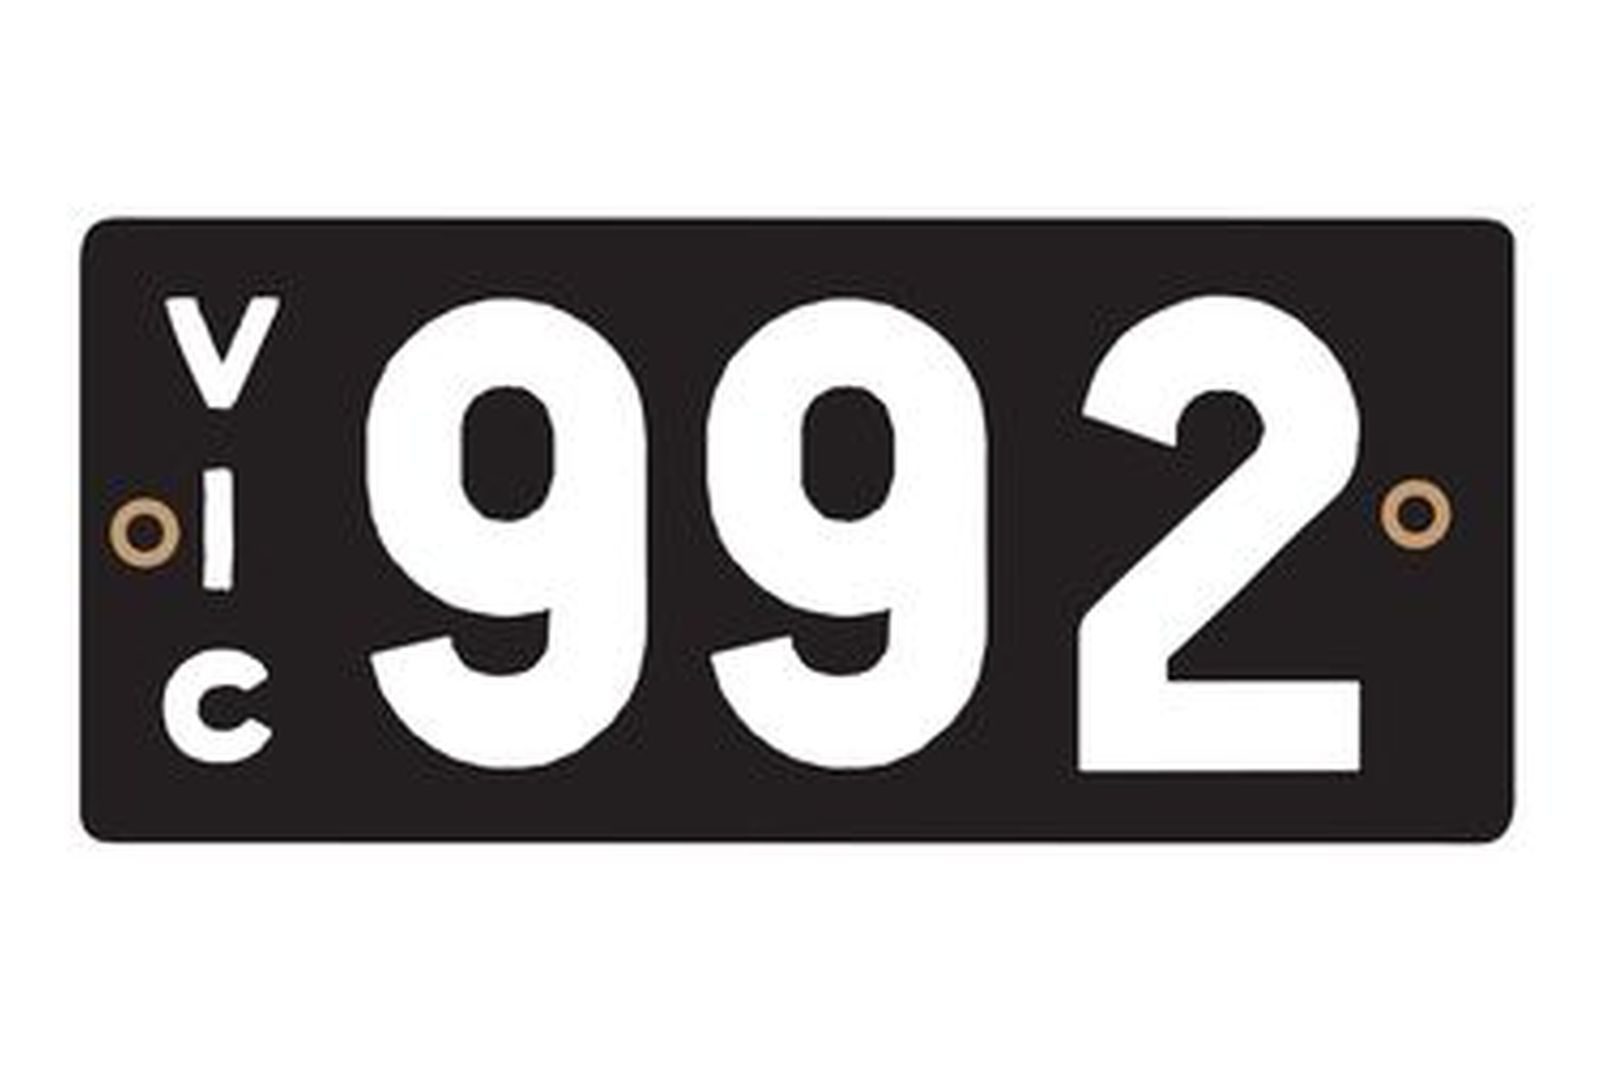 Number Plates - Victorian Heritage Numerical Number Plates '992'